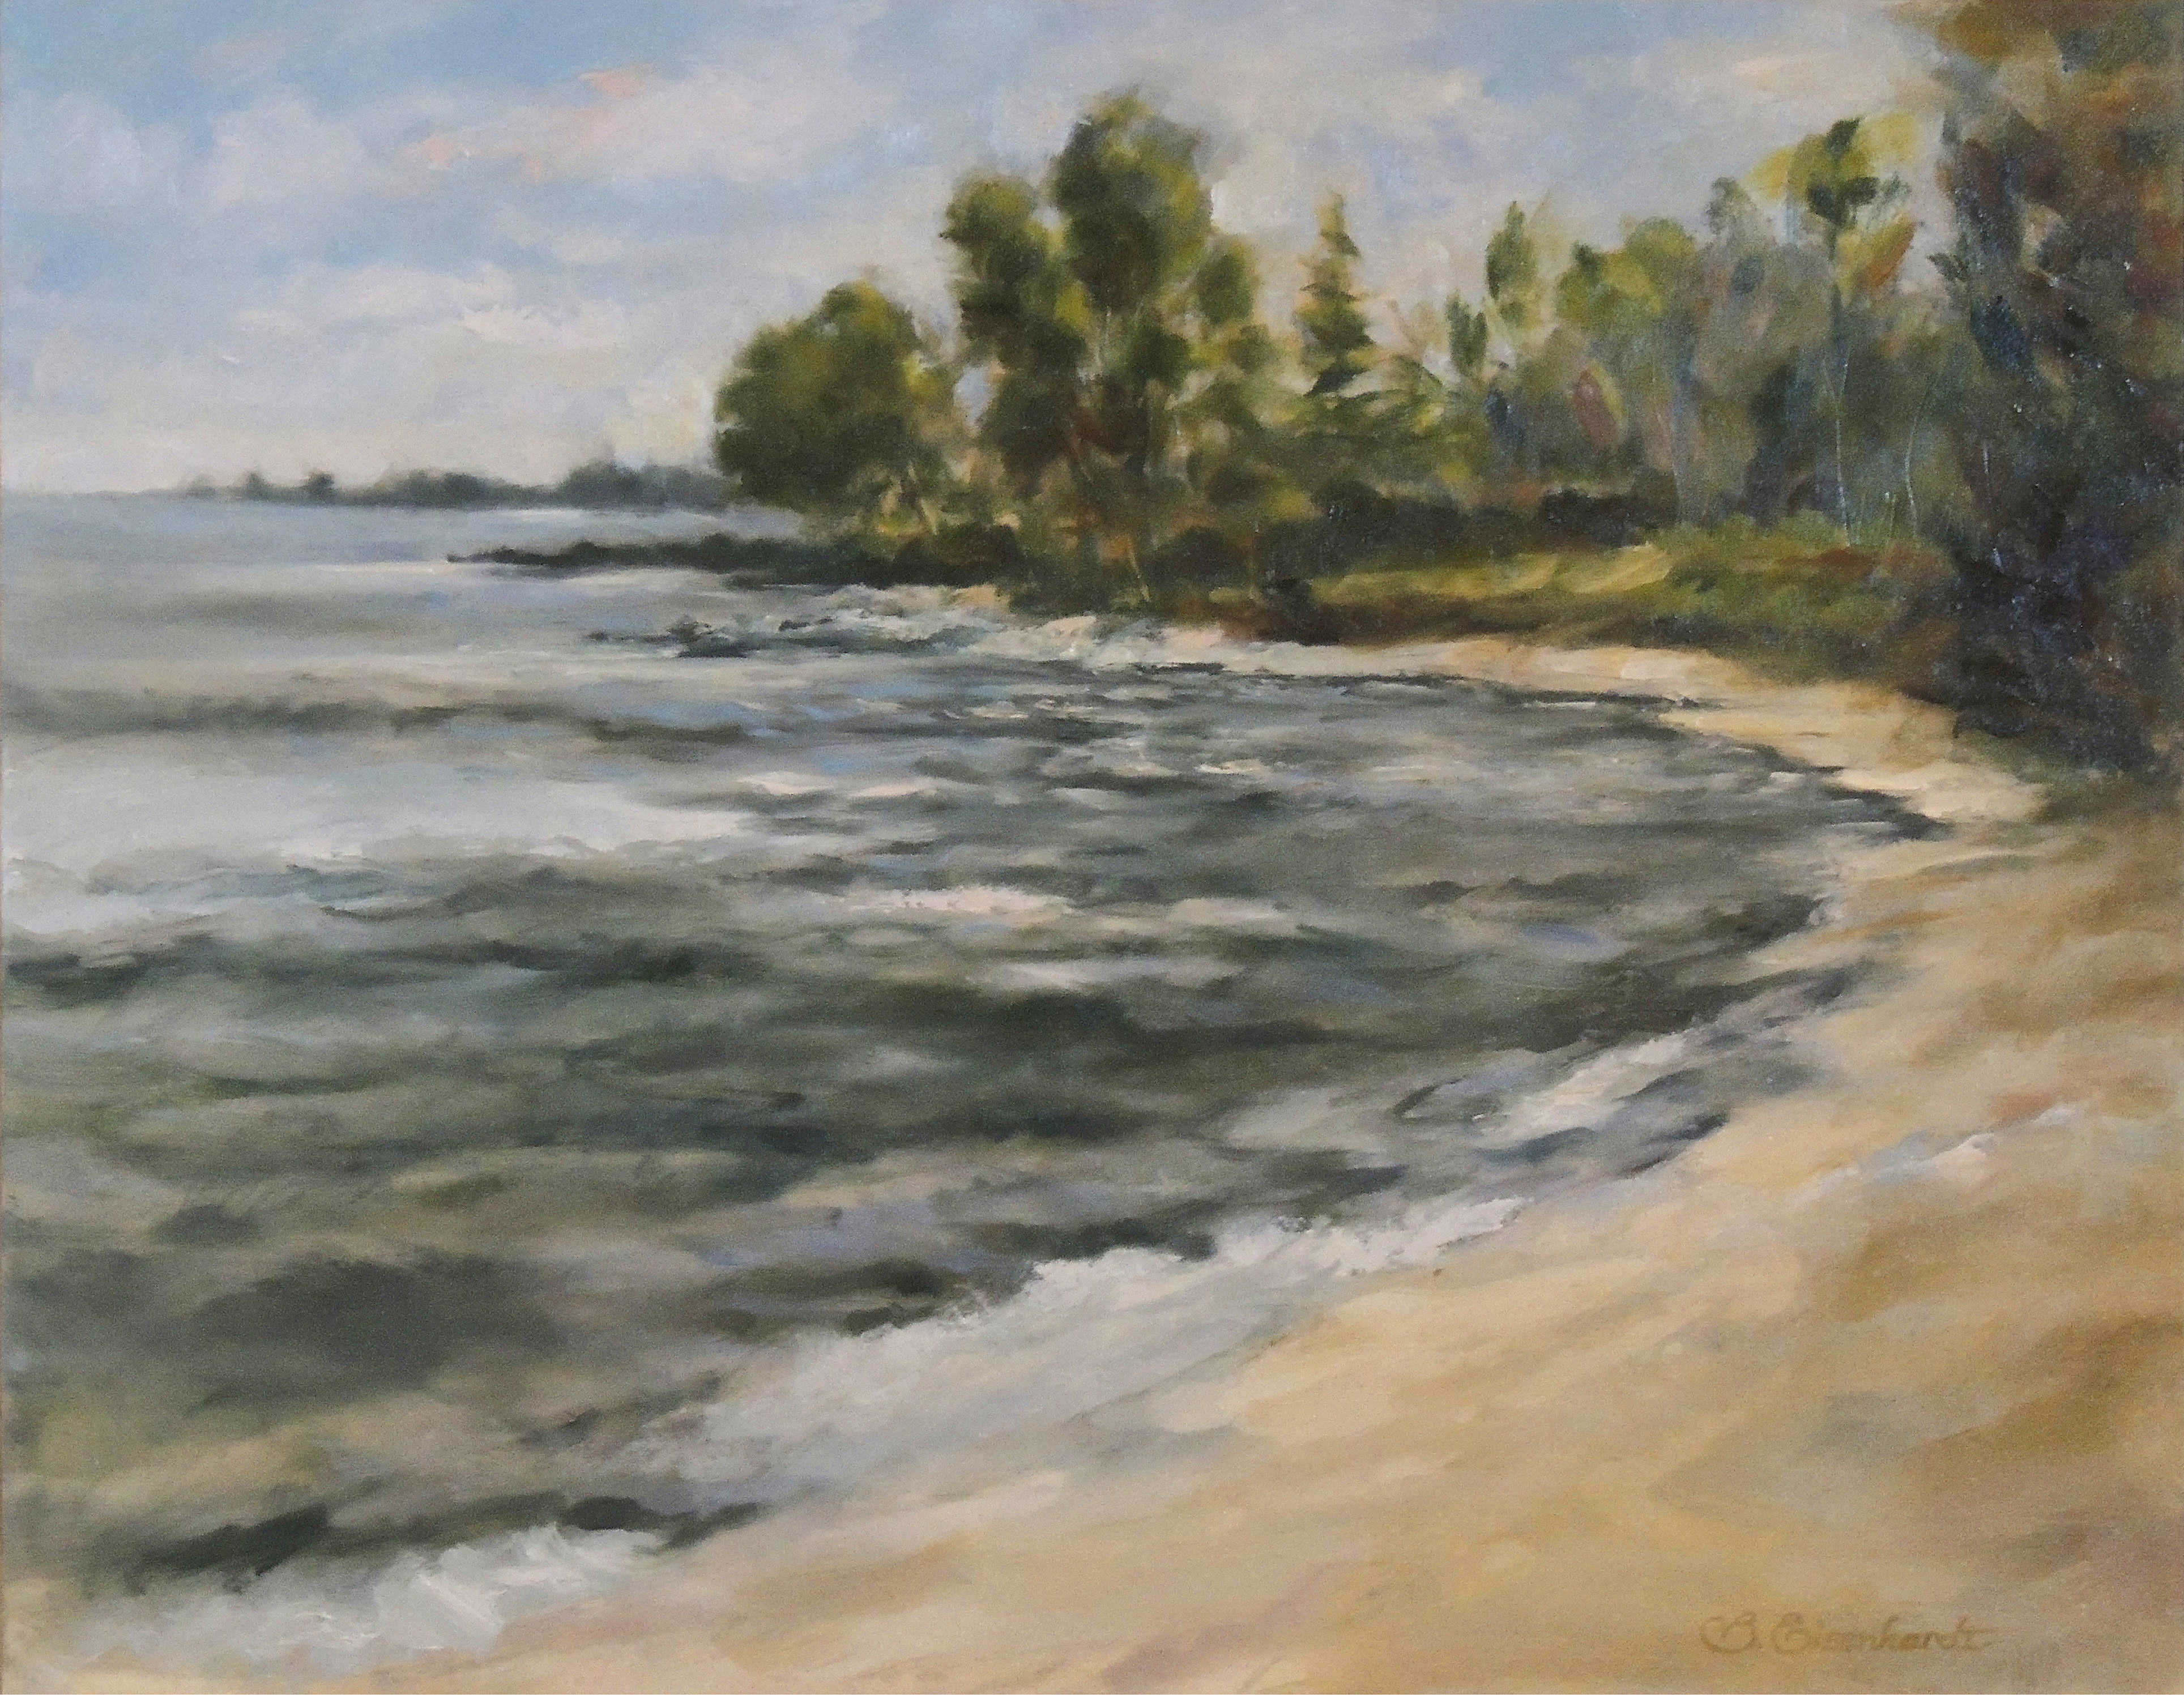 Barbara Eisenhardt | BEACH AT SHEROD PARK | oil | frame size 20x24